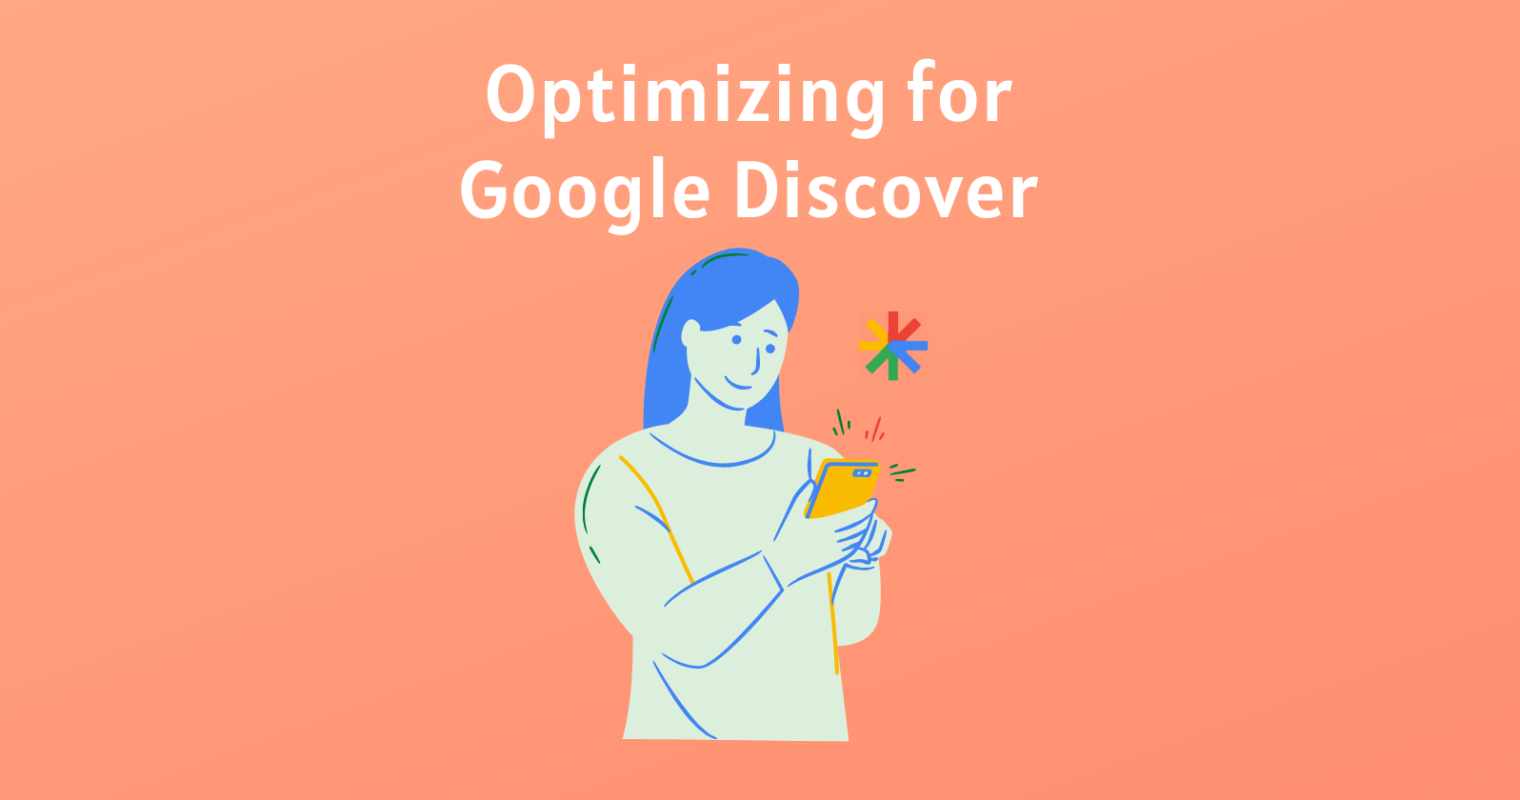 Optimizing for Google Discover: Key Areas to Focus On